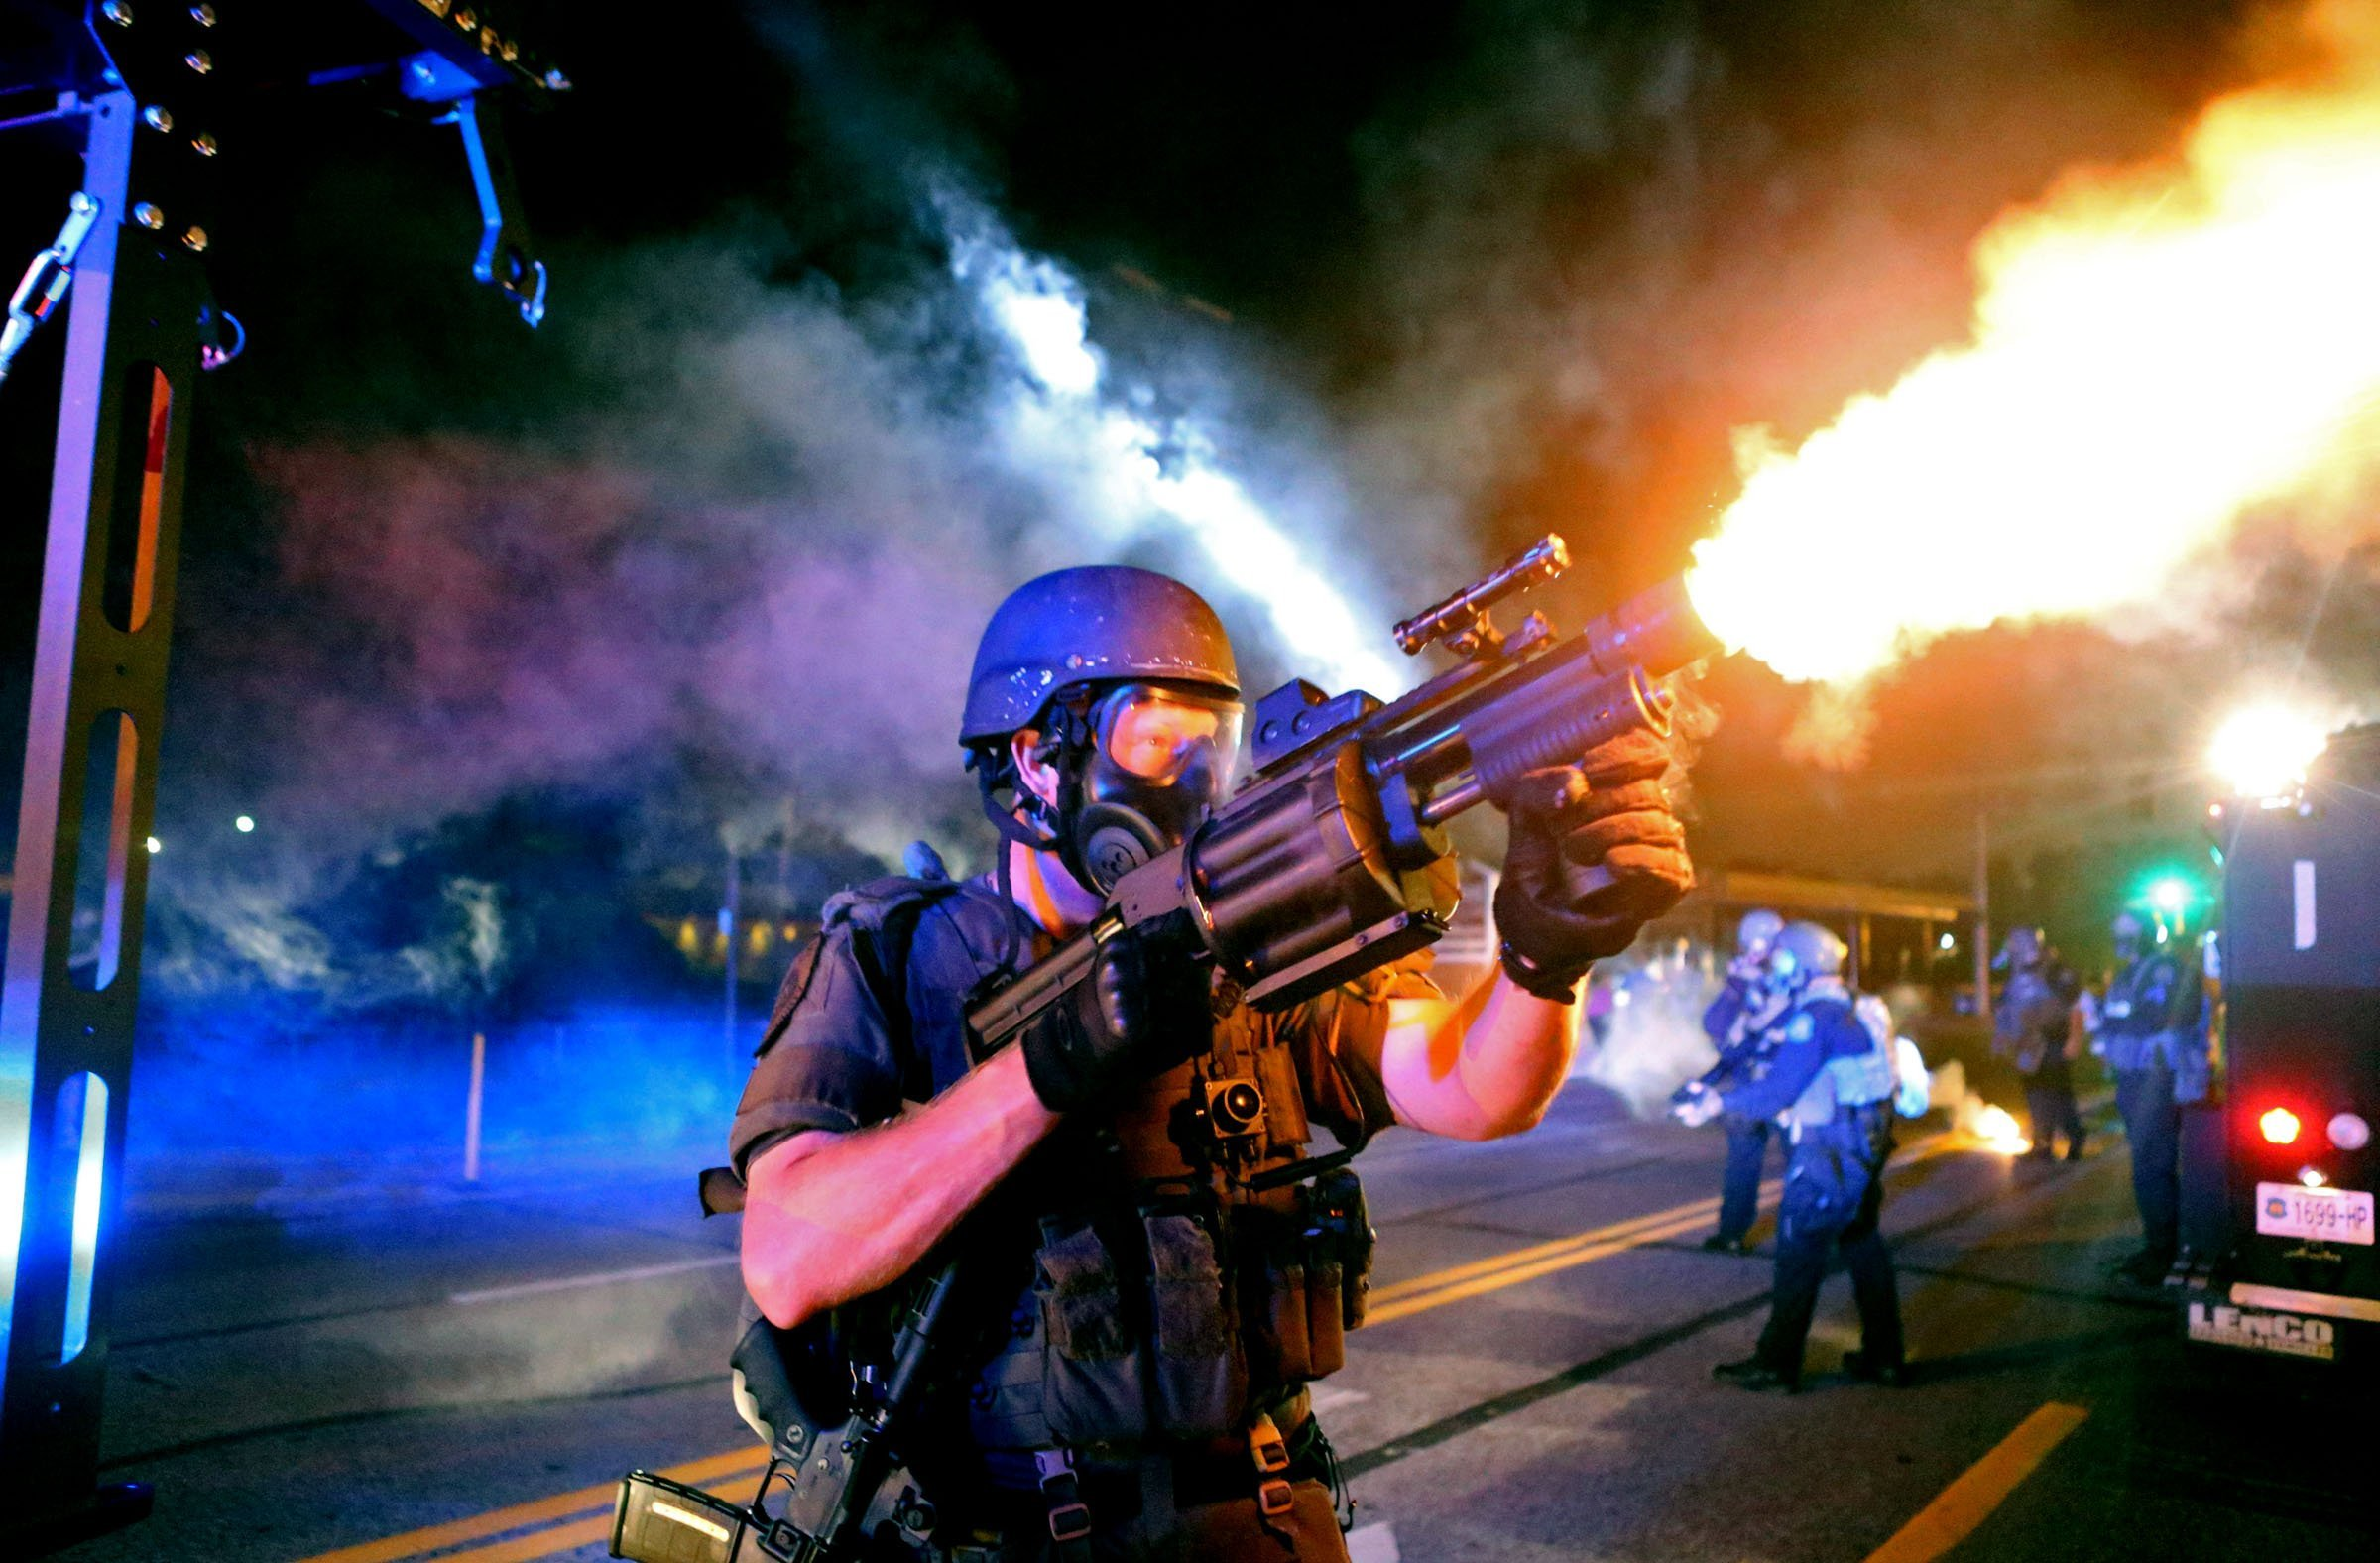 Police fire tear gas in the direction of where bottles were thrown from crowds gathered near the QuikTrip on W. Florissant Avenue in Ferguson, Mo. on Aug. 18, 2014.